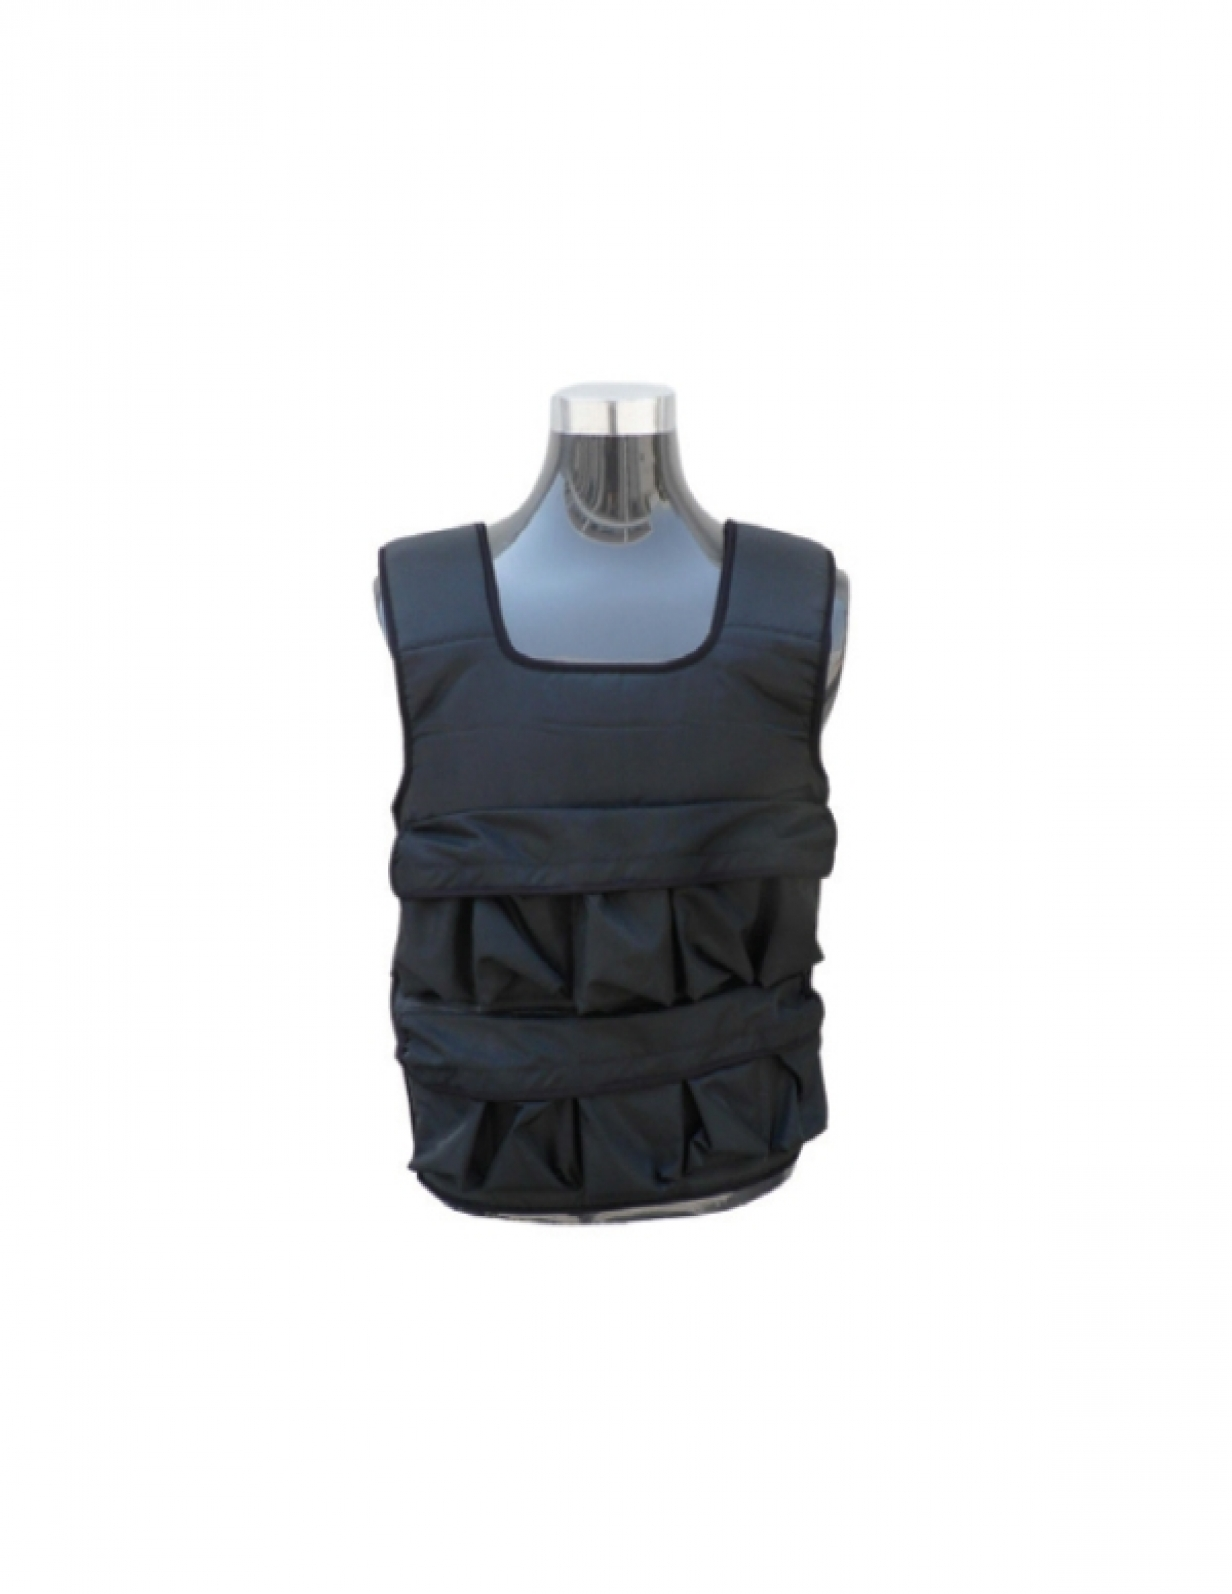 W 3152 WEIGHT VEST 20 LB ADJUSTABLE